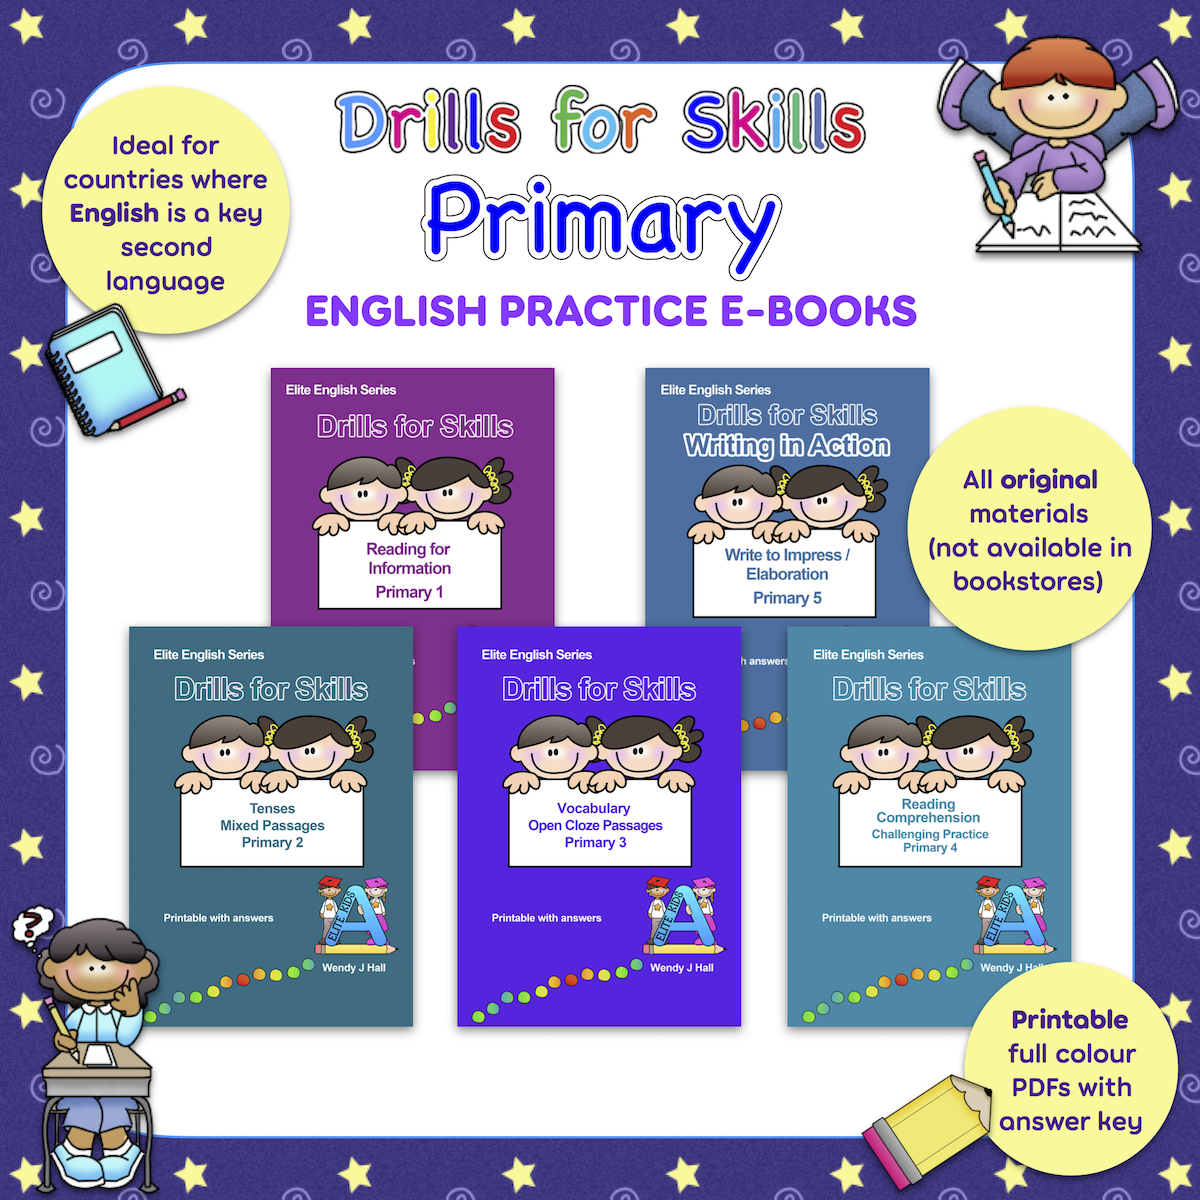 Drills for Skills - Primary English Practice E-books